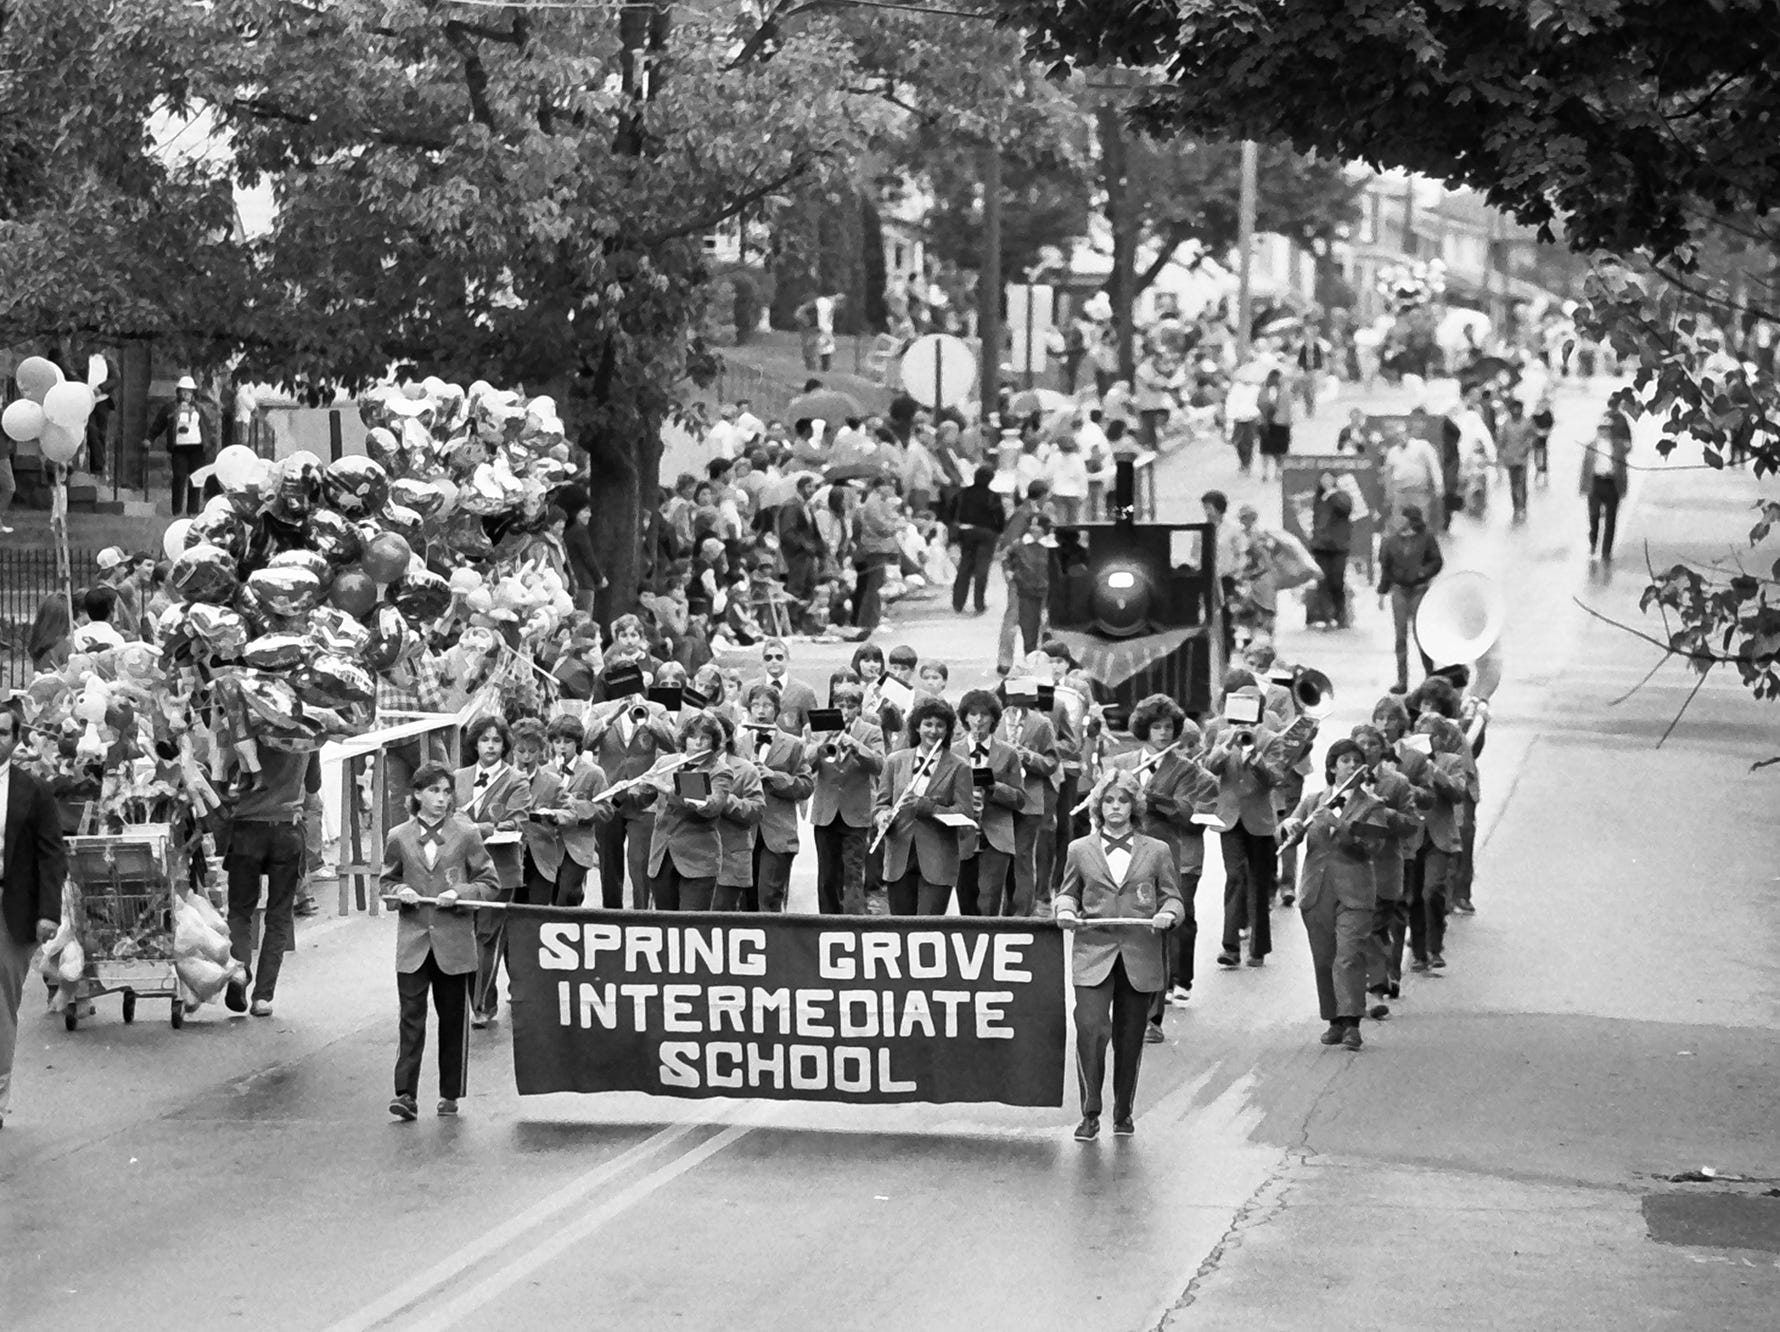 In 1985, Spring Grove Intermediate School marched in the Spring Grove Halloween Parade.